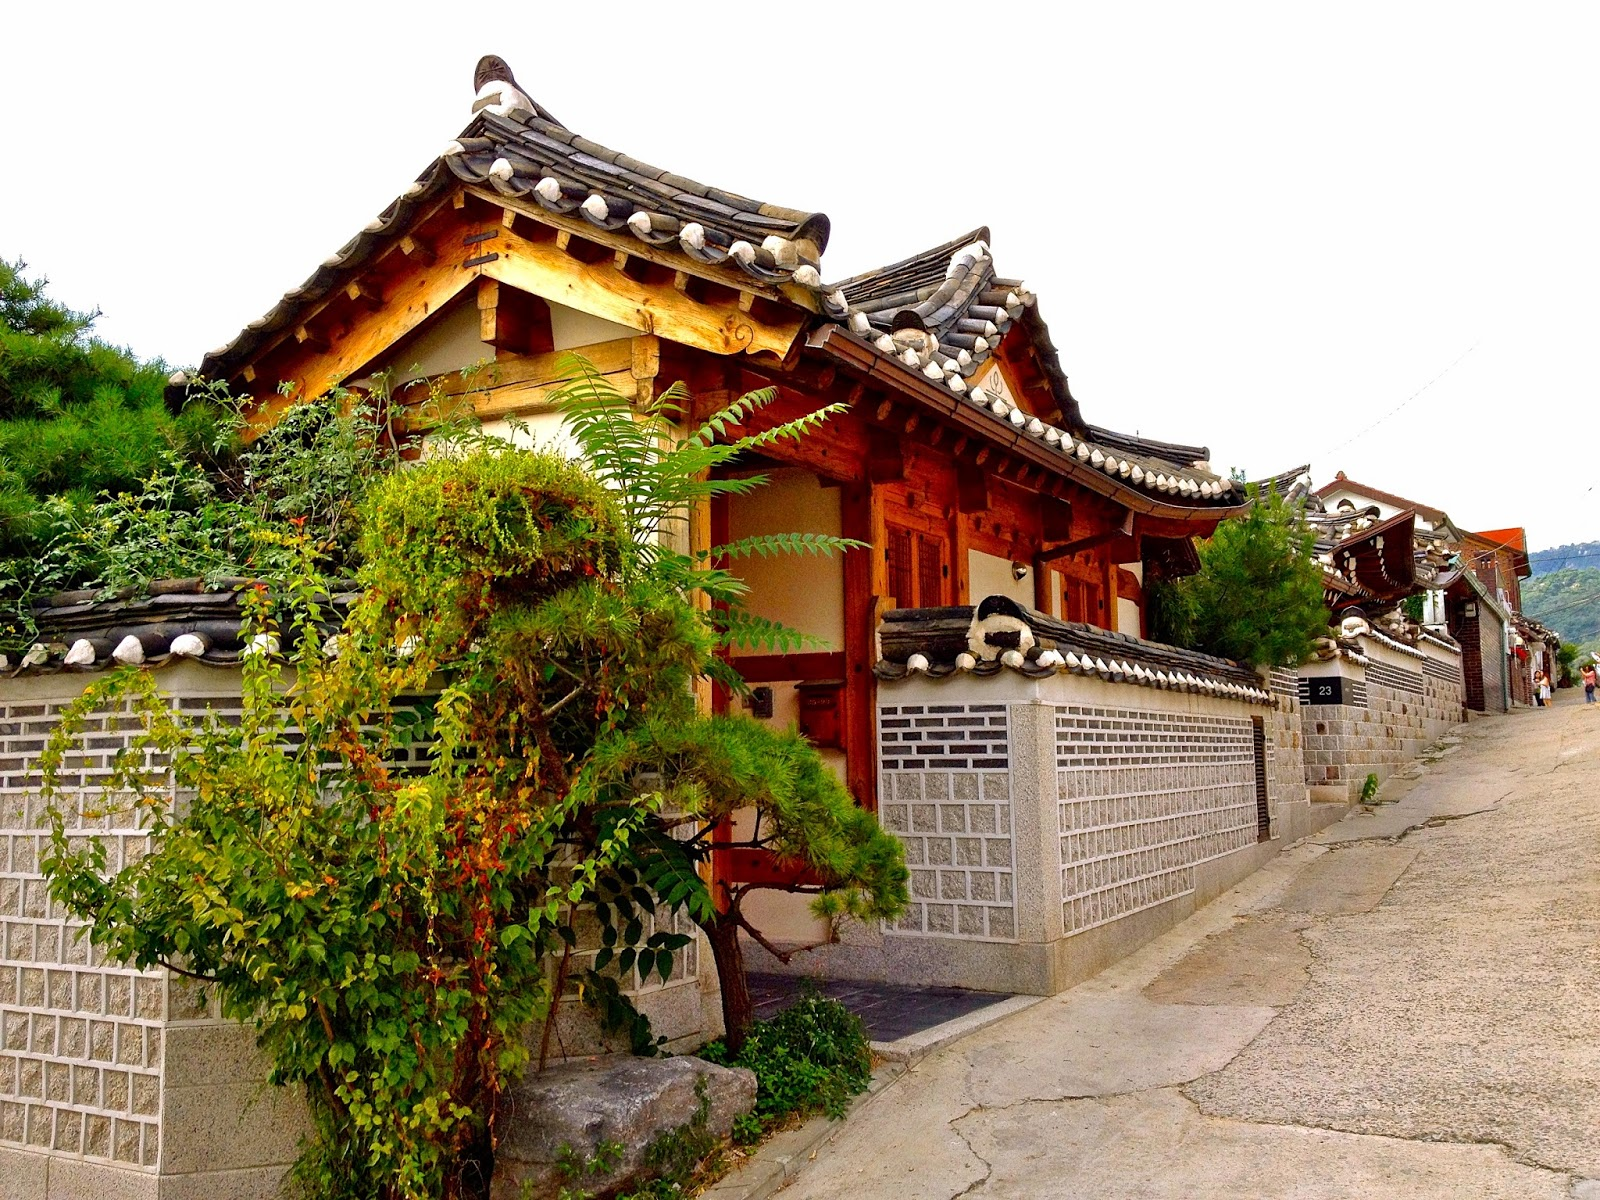 bukchon hanook traditional village seoul korea